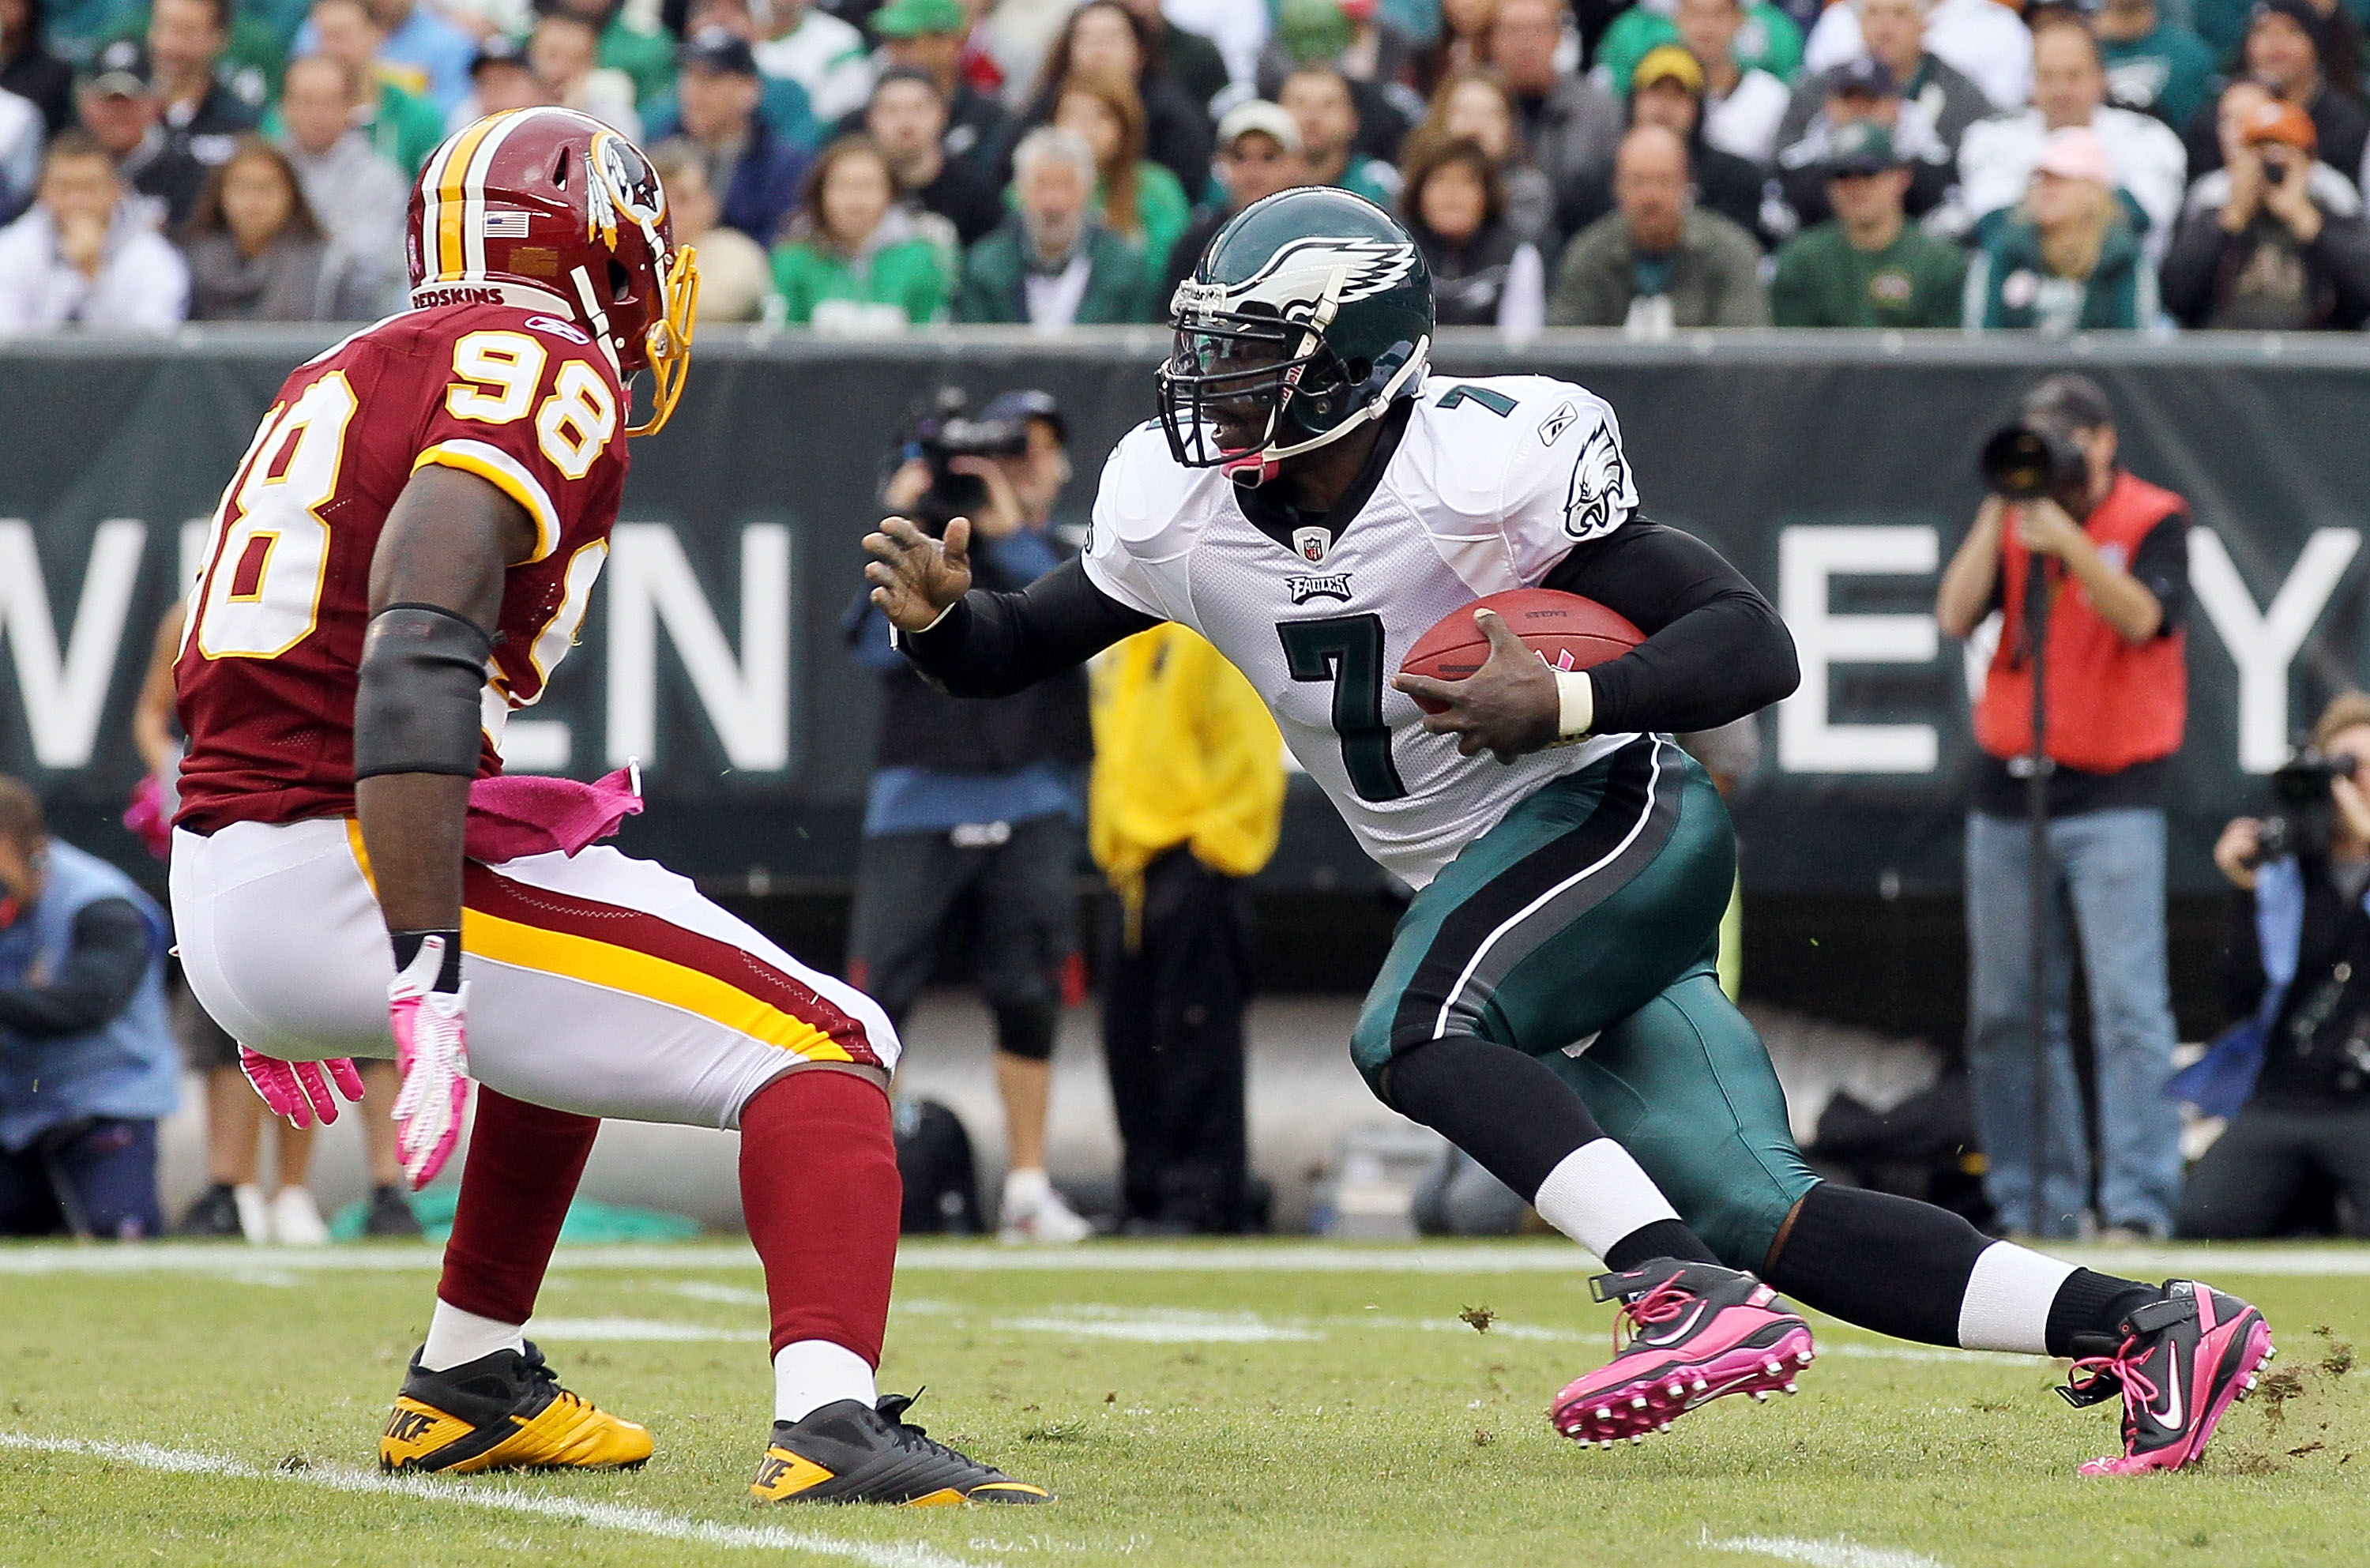 PHILADELPHIA - OCTOBER 03:  Michael Vick #7 of the Philadelphia Eagles runs the ball against Brian Orakpo #98 of the Washington Redskins on October 3, 2010 at Lincoln Financial Field in Philadelphia, Pennsylvania.  (Photo by Jim McIsaac/Getty Images)